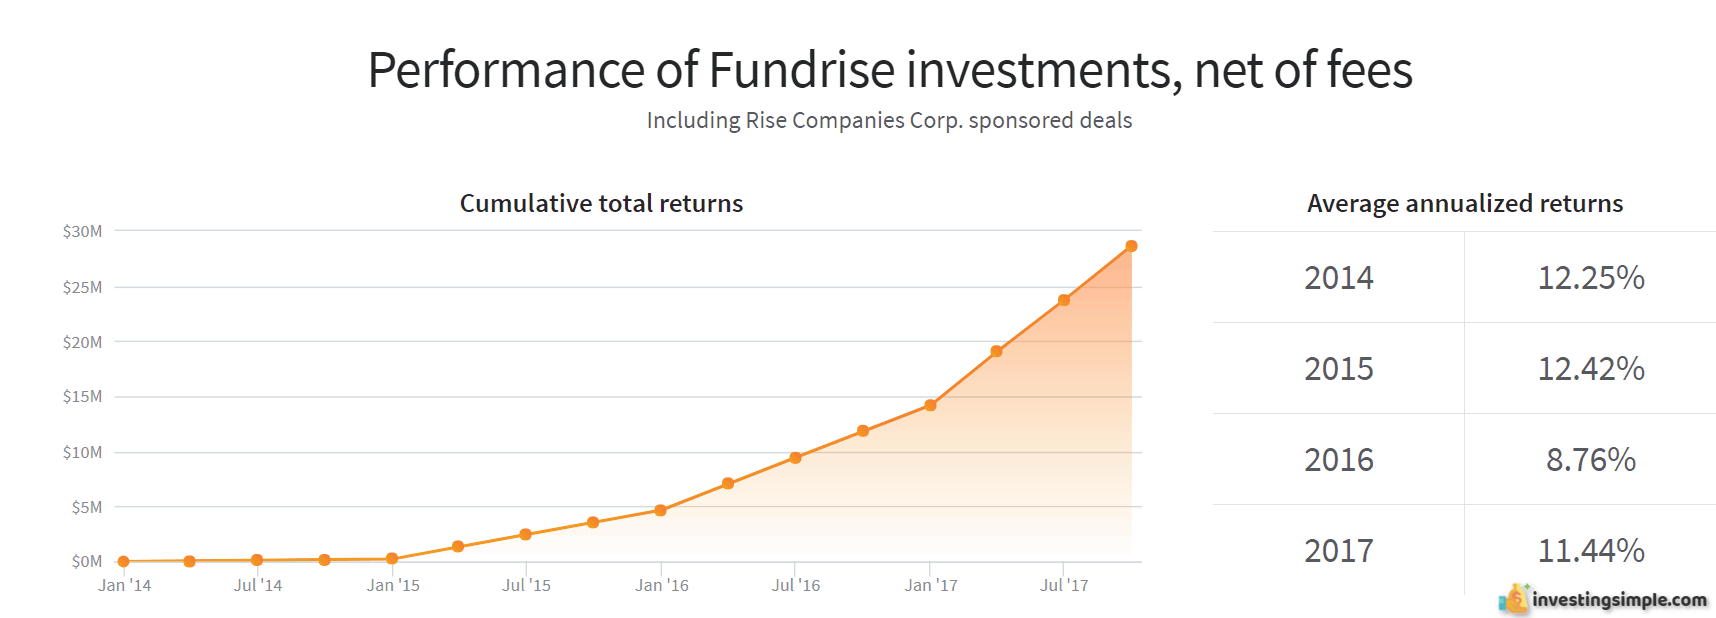 Fundrise historic performance. These are the historic returns realized by fundrise investors.